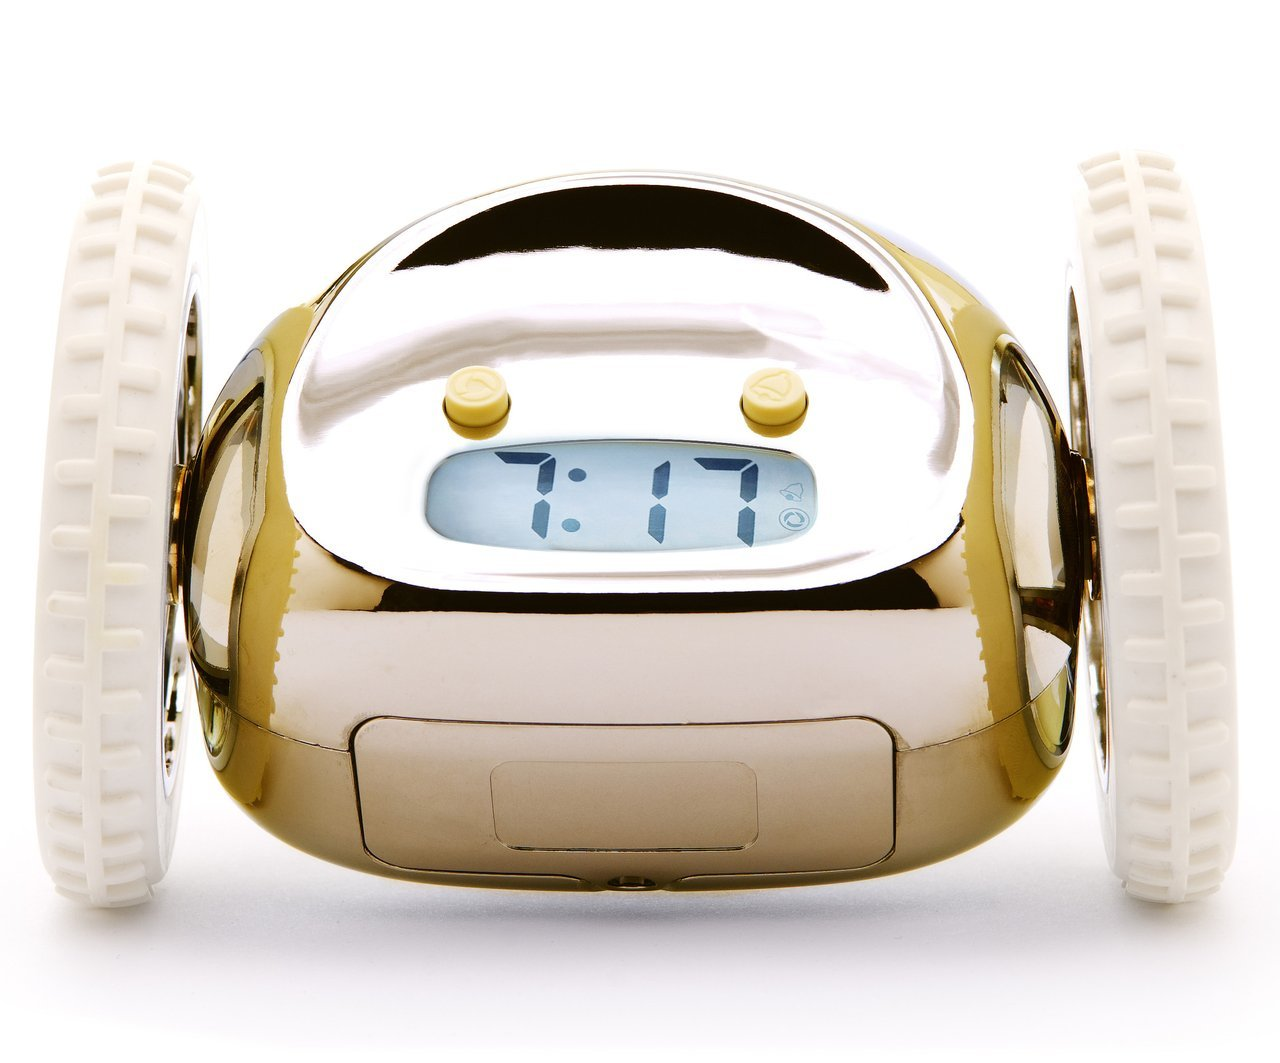 Clocky the Original Runaway Alarm Clock on Wheels, Gold | Dorm Room Décor, Back to School (Perfect for Students from Elementary School to College & Beyond) by Suck UK